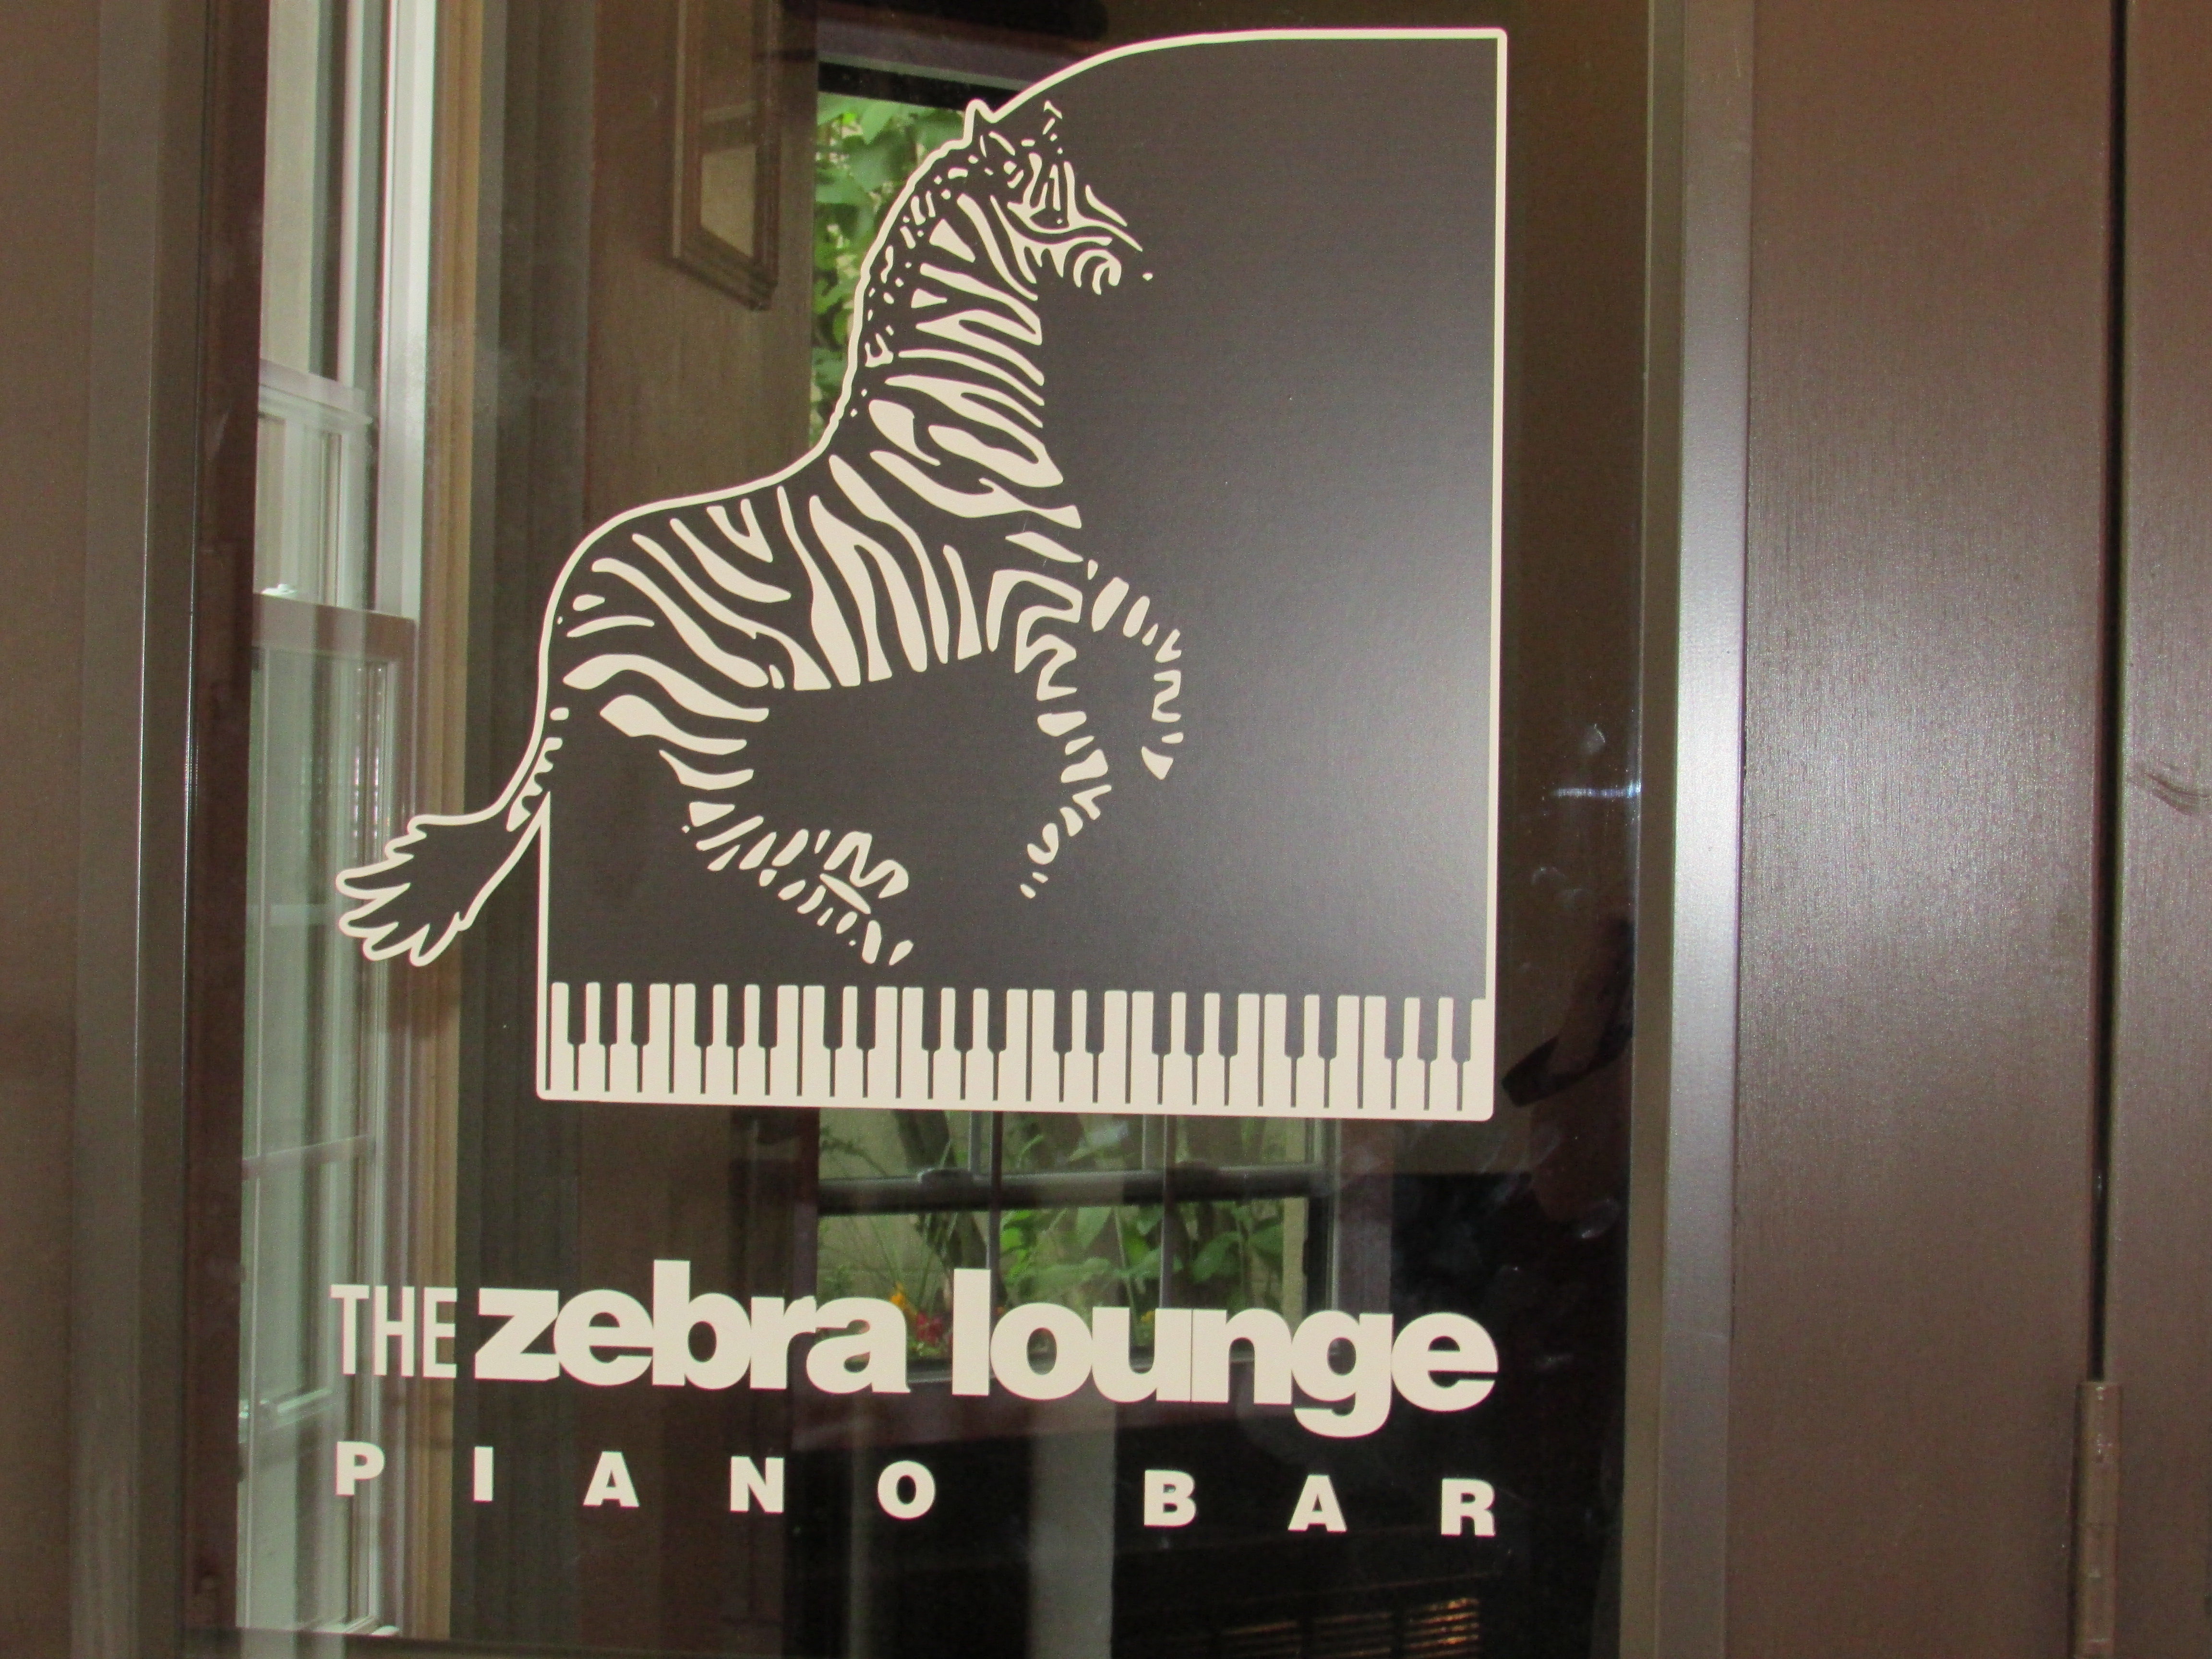 The Zebra Lounge Piano Bar